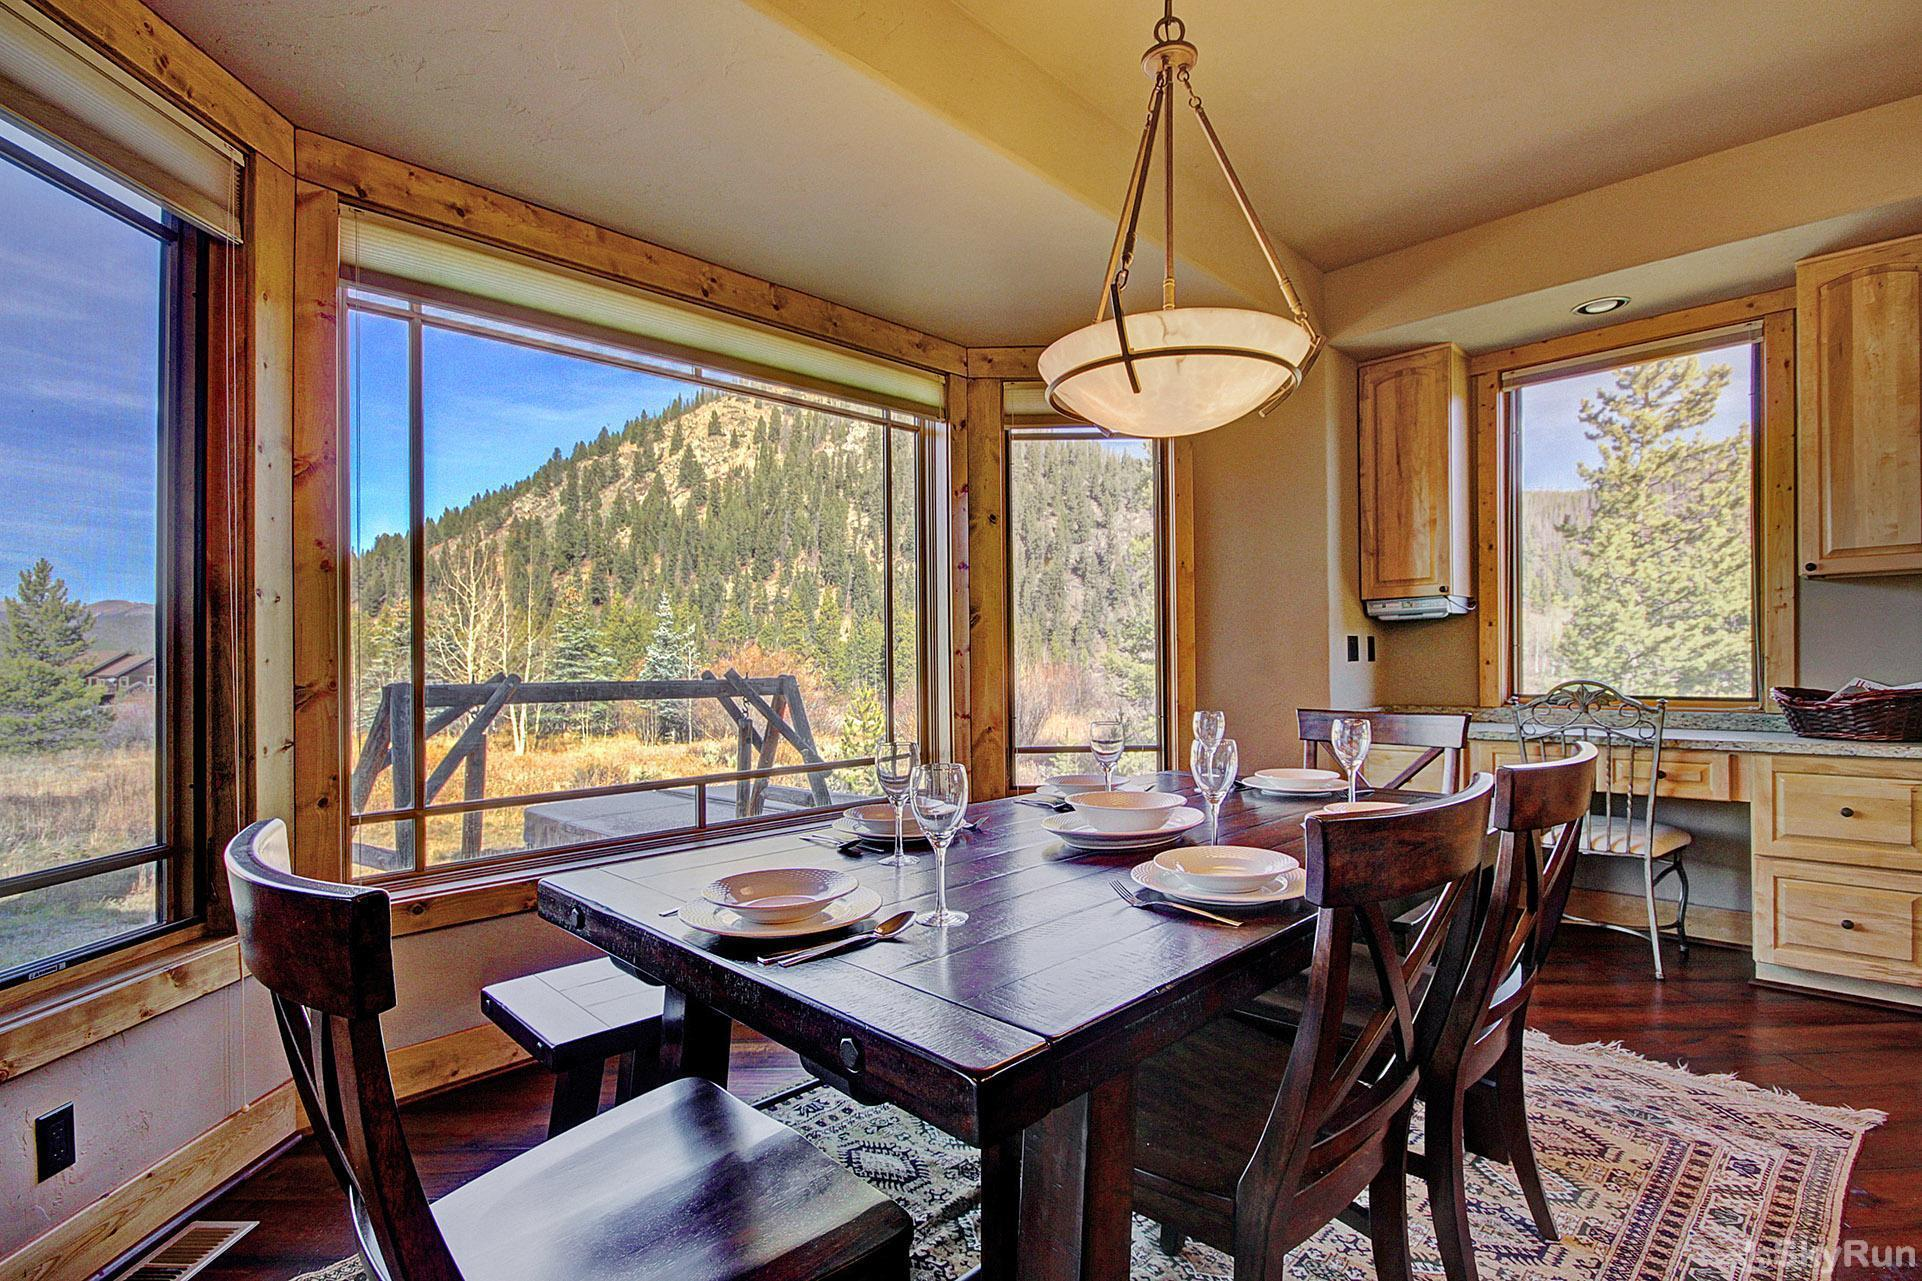 Buffalo Lodge Dining room with beautiful views